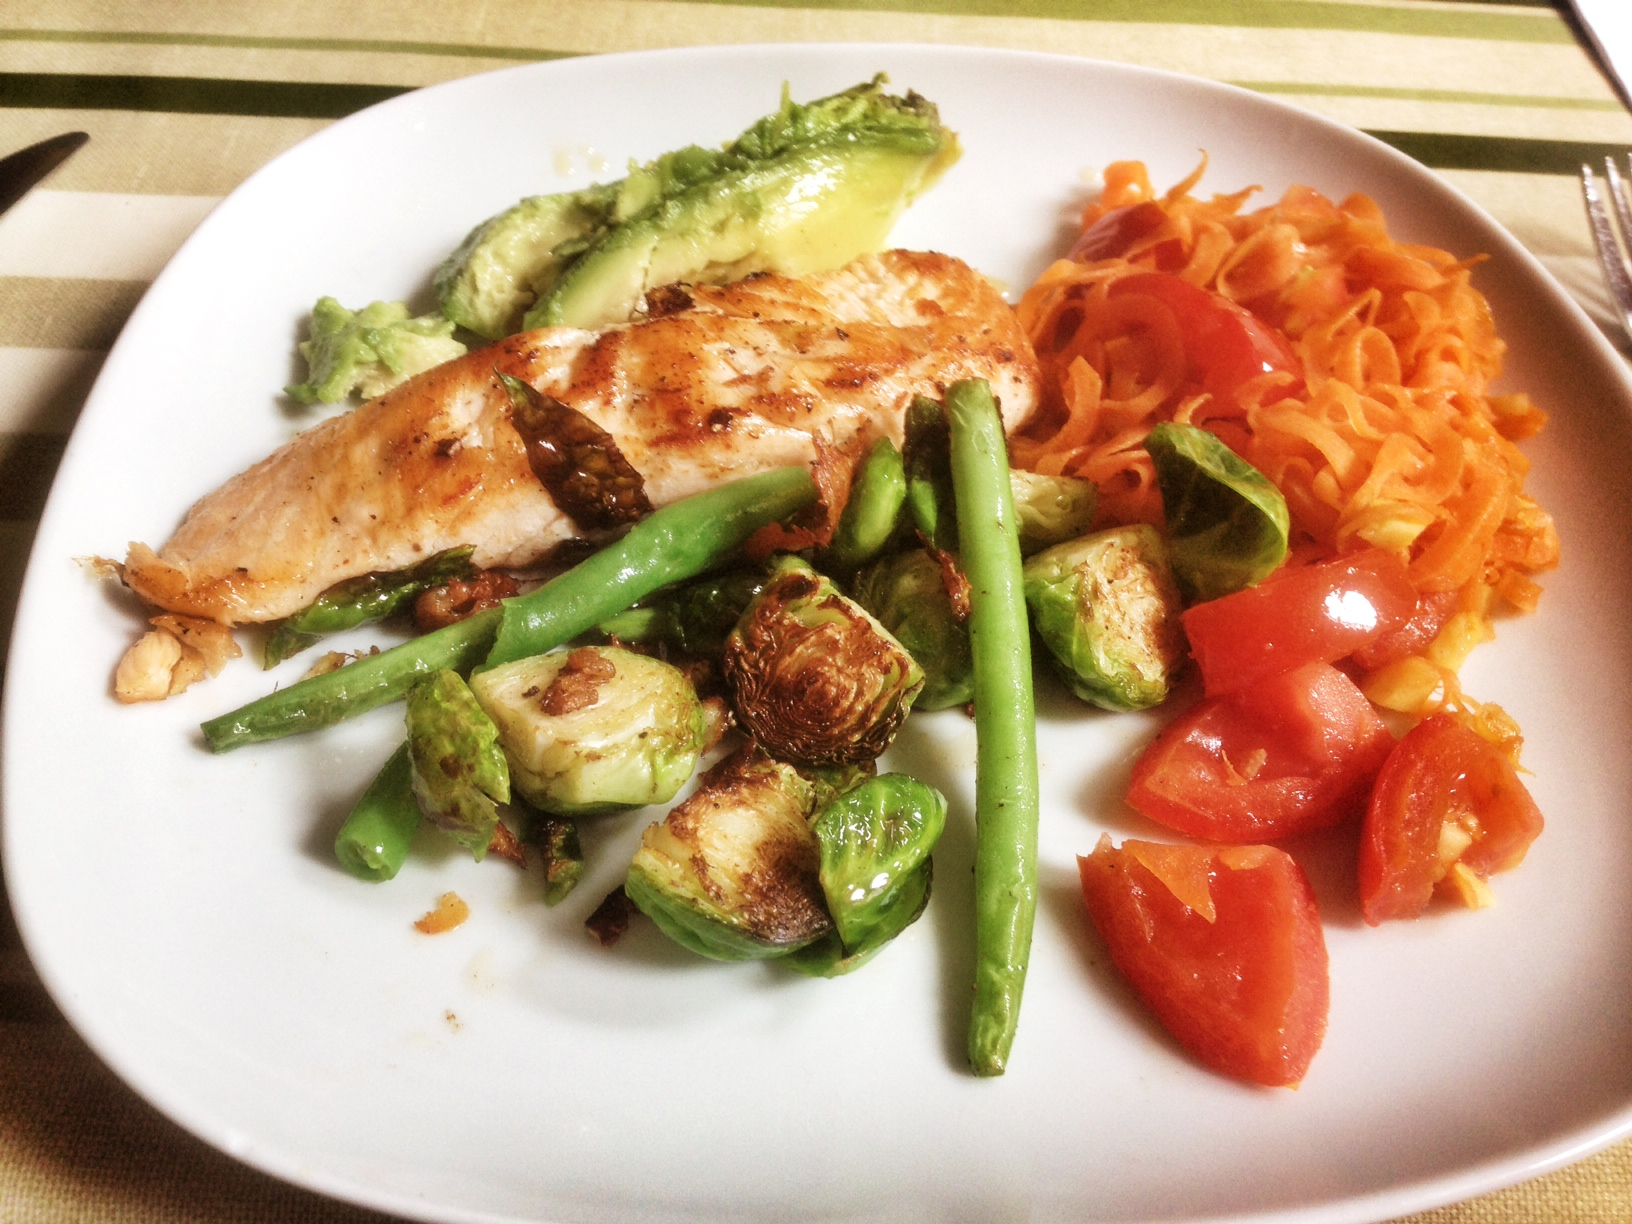 Salmon and its benefits